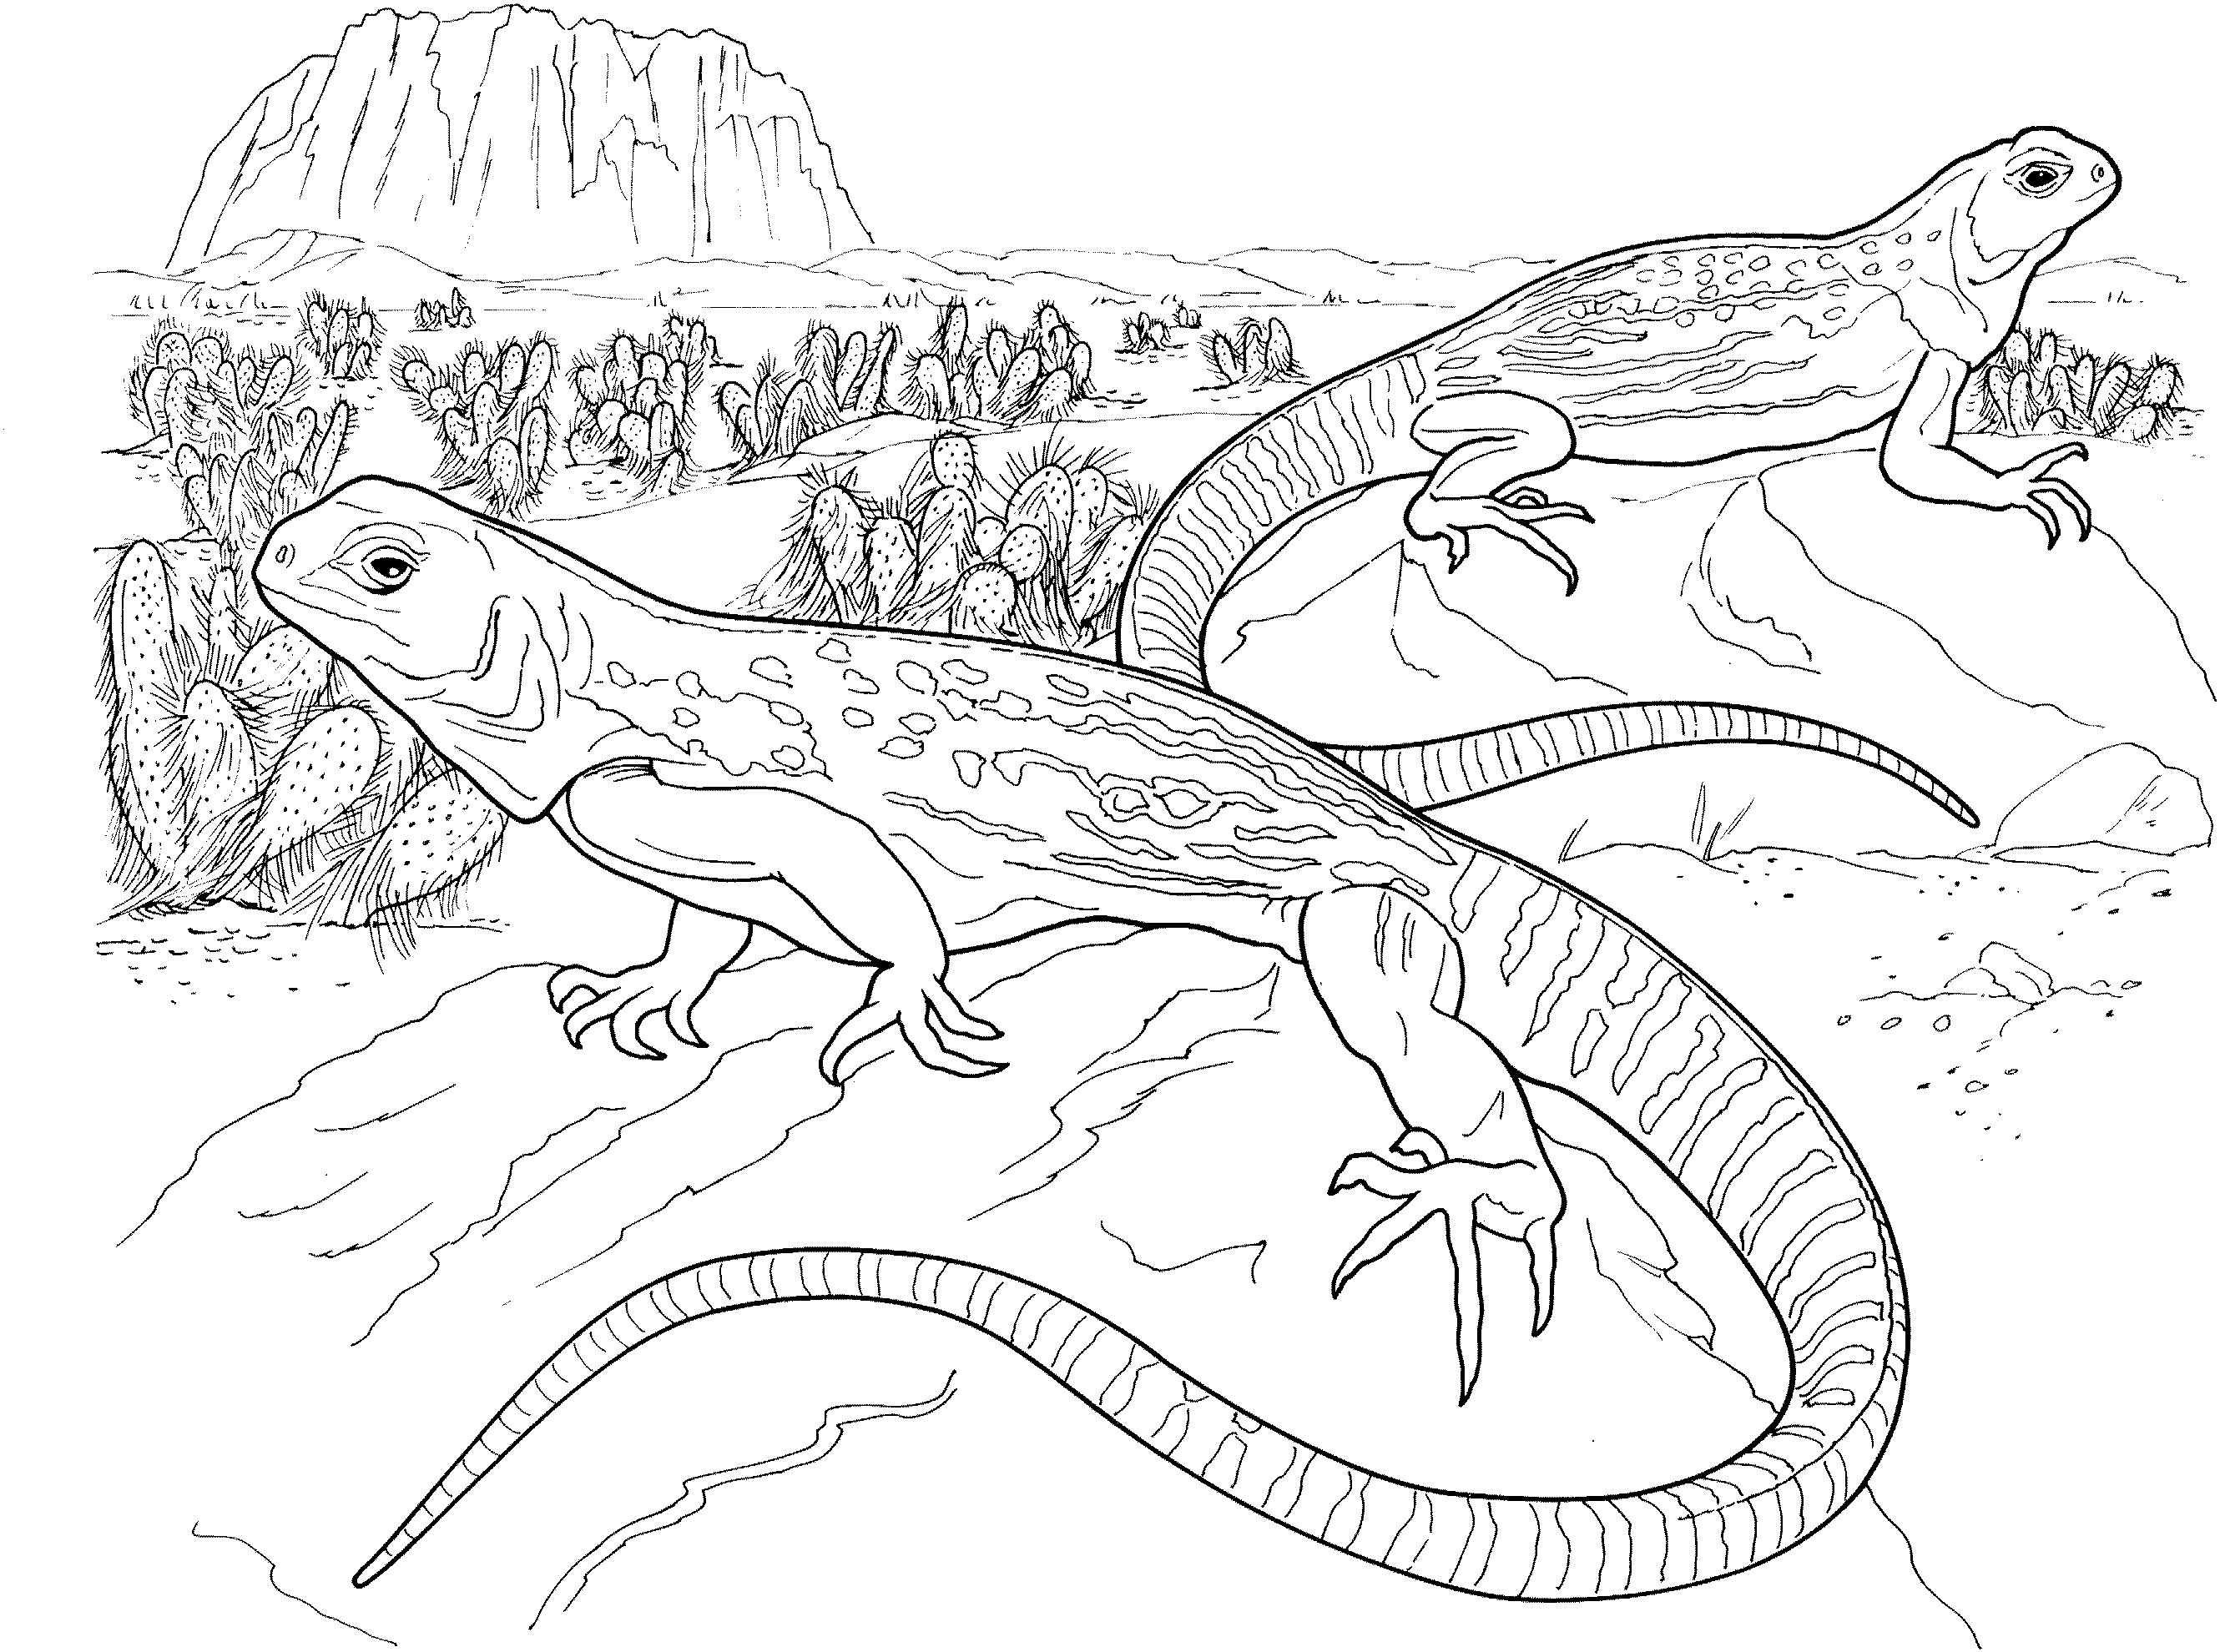 25 Lizard Coloring Pages Compilation | FREE COLORING PAGES - Part 3